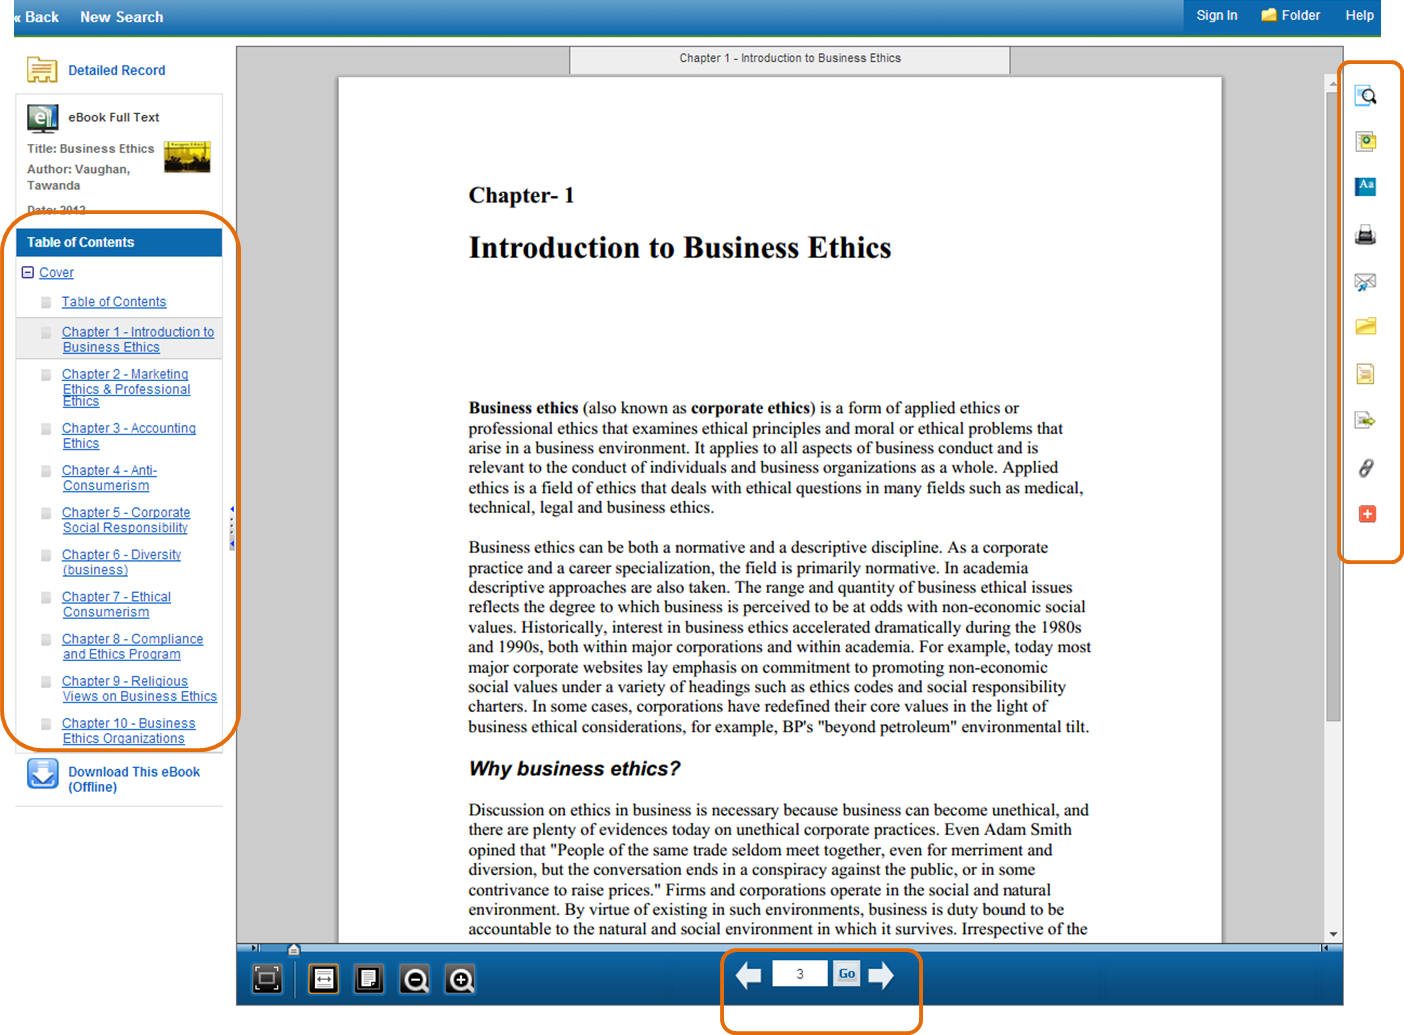 EBSCO ebook full text viewing option